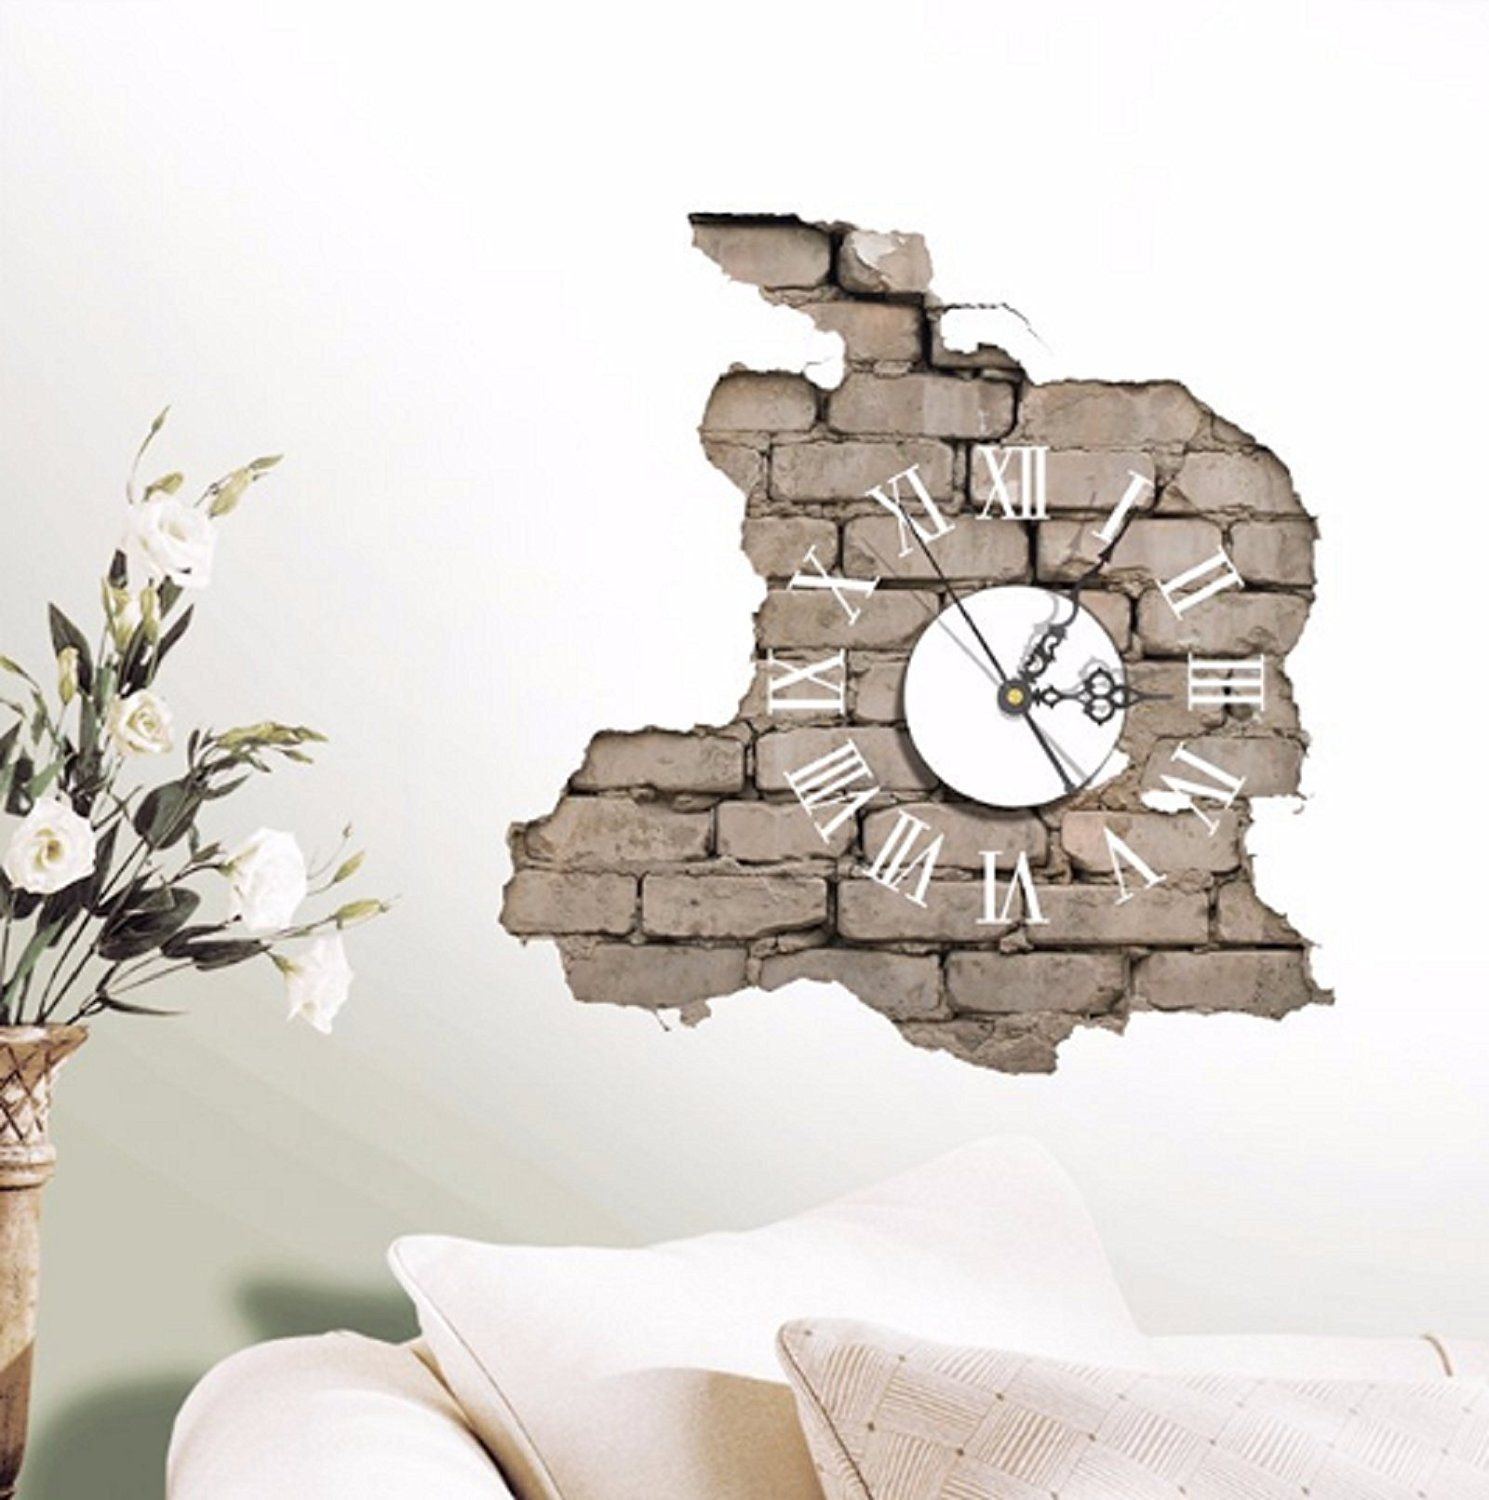 NEW! PAG STICKER 3D Wall Clock Decals Breaking Cracking Wall ...